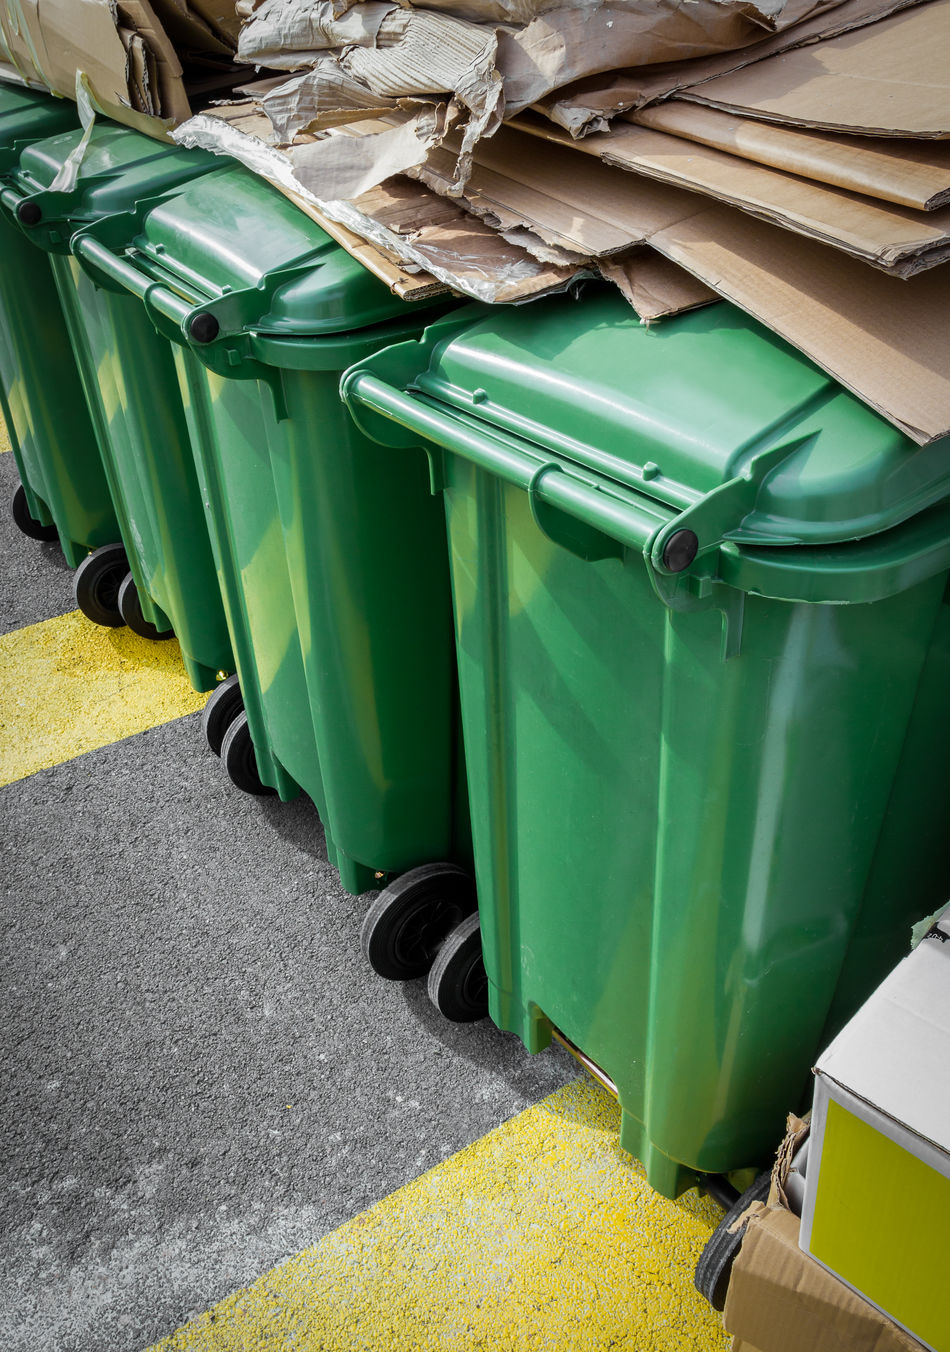 Paper and cardboard on green recycle bins Bin Boxes Can Cardboard Concept Container Disposal Dump Dumpster Ecology Environment Full Garbage Green Outdoors Paper Recycle Recycling Rubbish Separation Street Trash Urban Vertical Waste